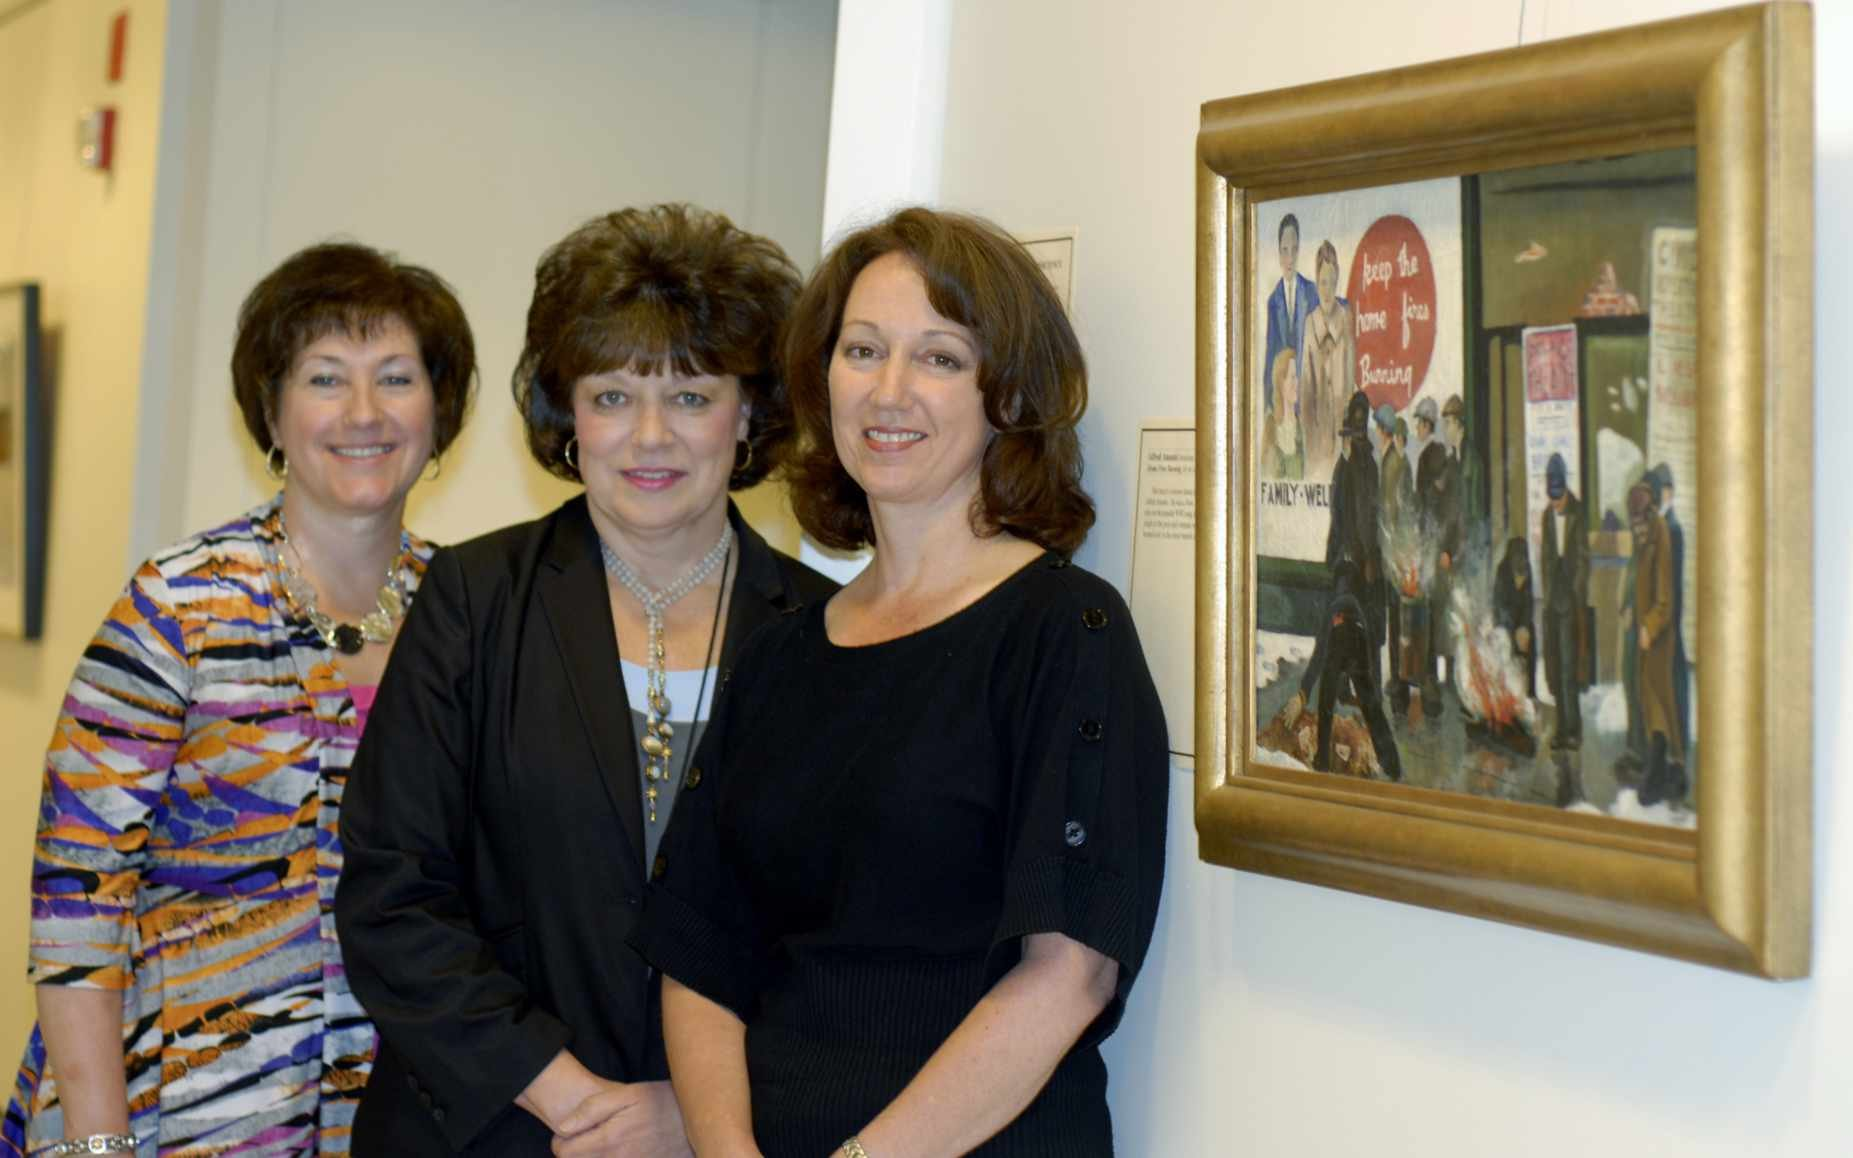 Kris Gerencir, chief deputy of the U.S. District Court for the Southern District of West Virginia, and federal clerk Teresa Deppner stand with Jennifer Peyton in front of the court's most recent exhibit, donated from the Peytons' personal collection.